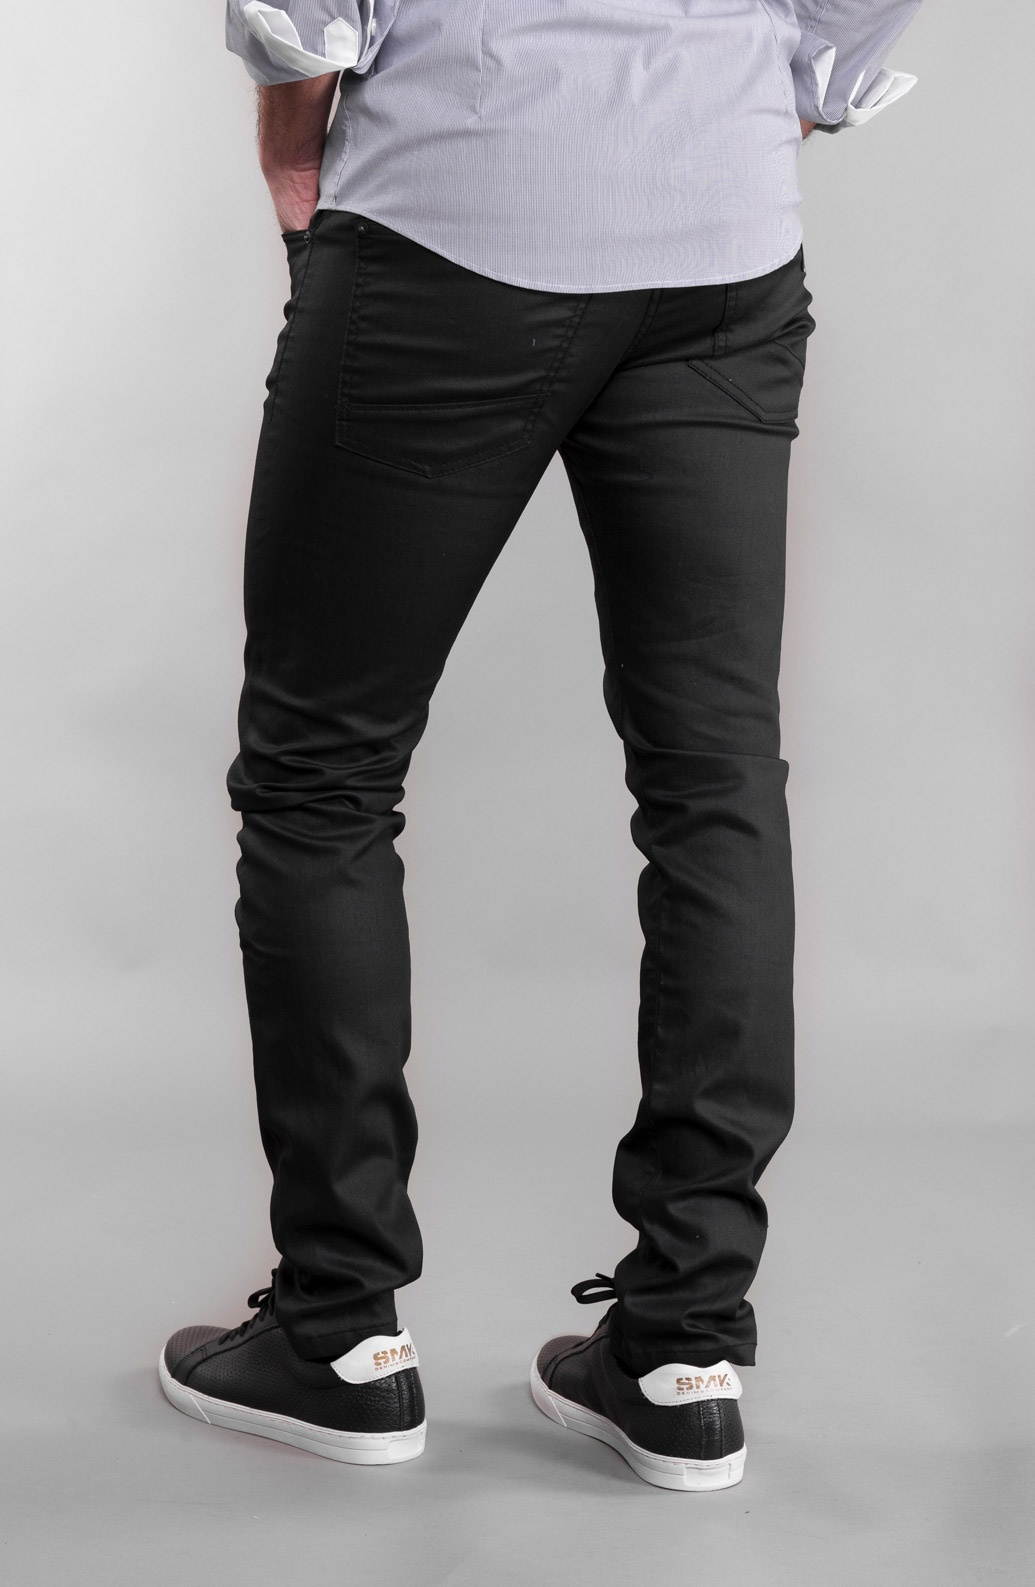 CALÇA SMK BLACK EDITION